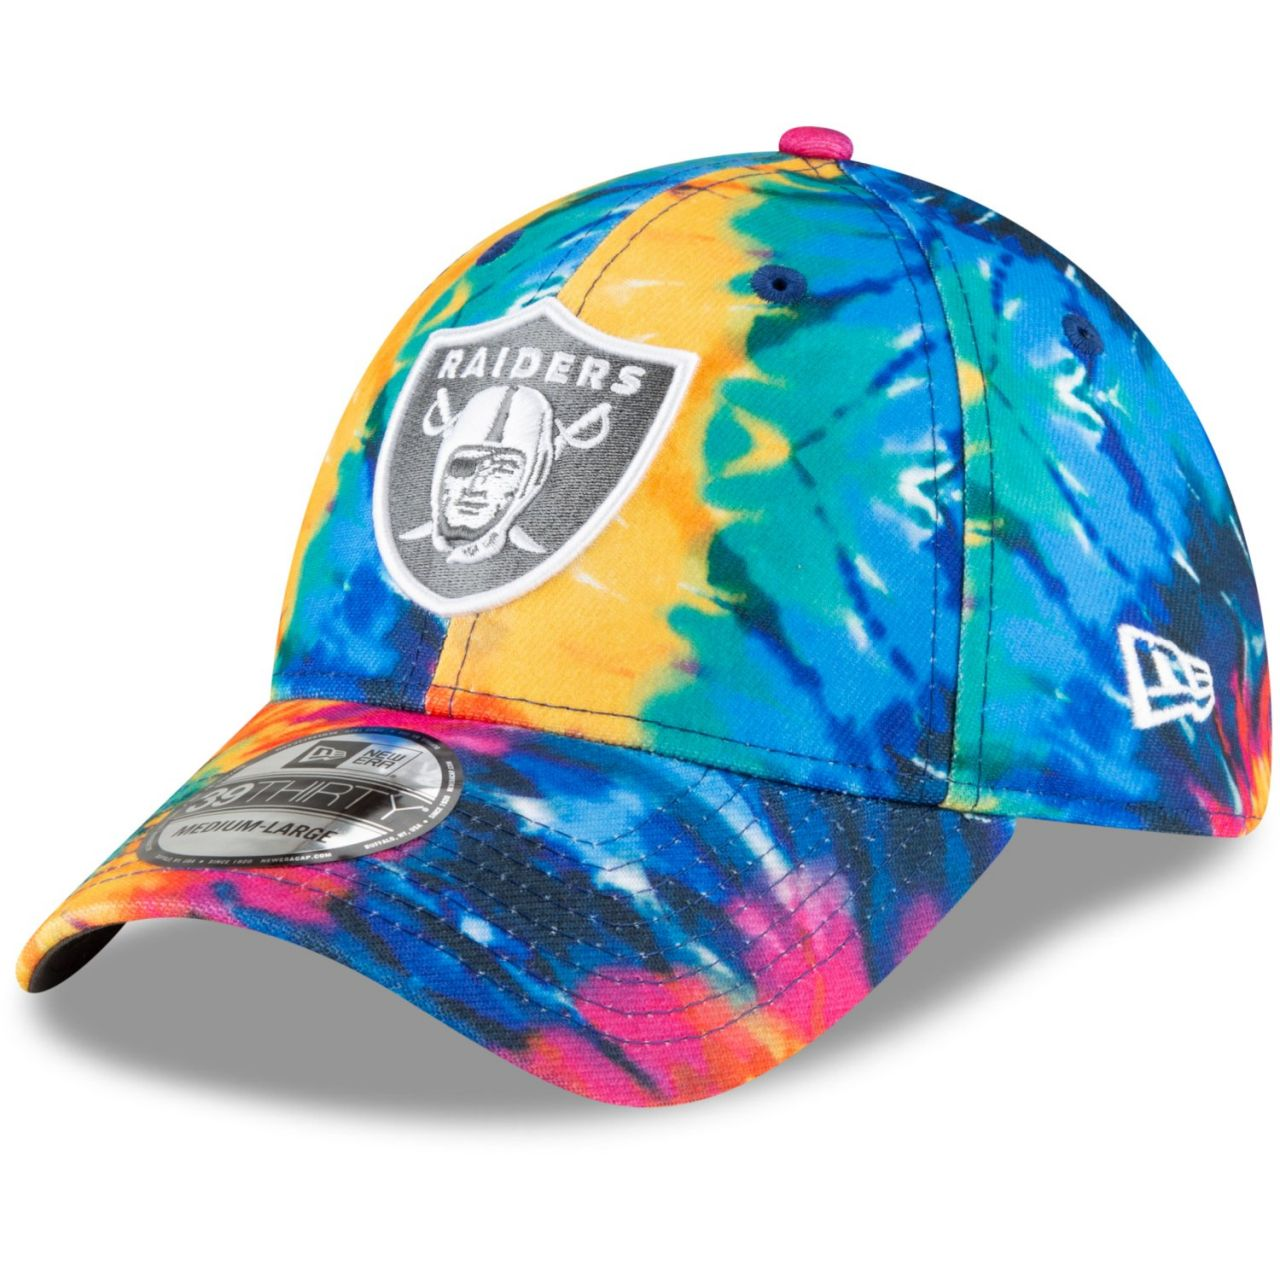 amfoo - New Era 39Thirty Cap - CRUCIAL CATCH Las Vegas Raiders